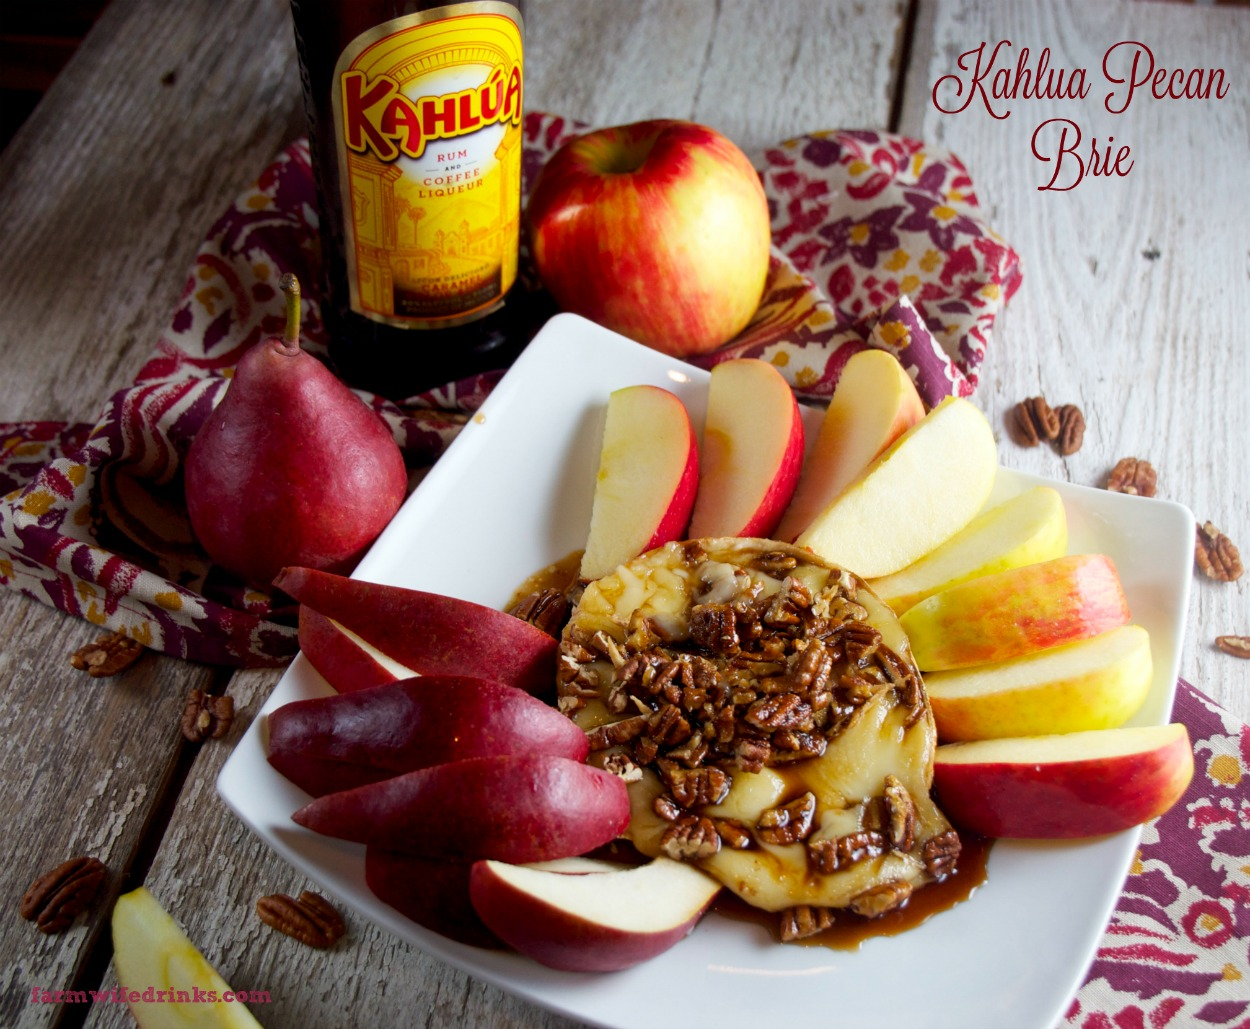 Baked Kahlua Pecan Brie is a perfect appetizer or dessert recipes served up with apple slices.